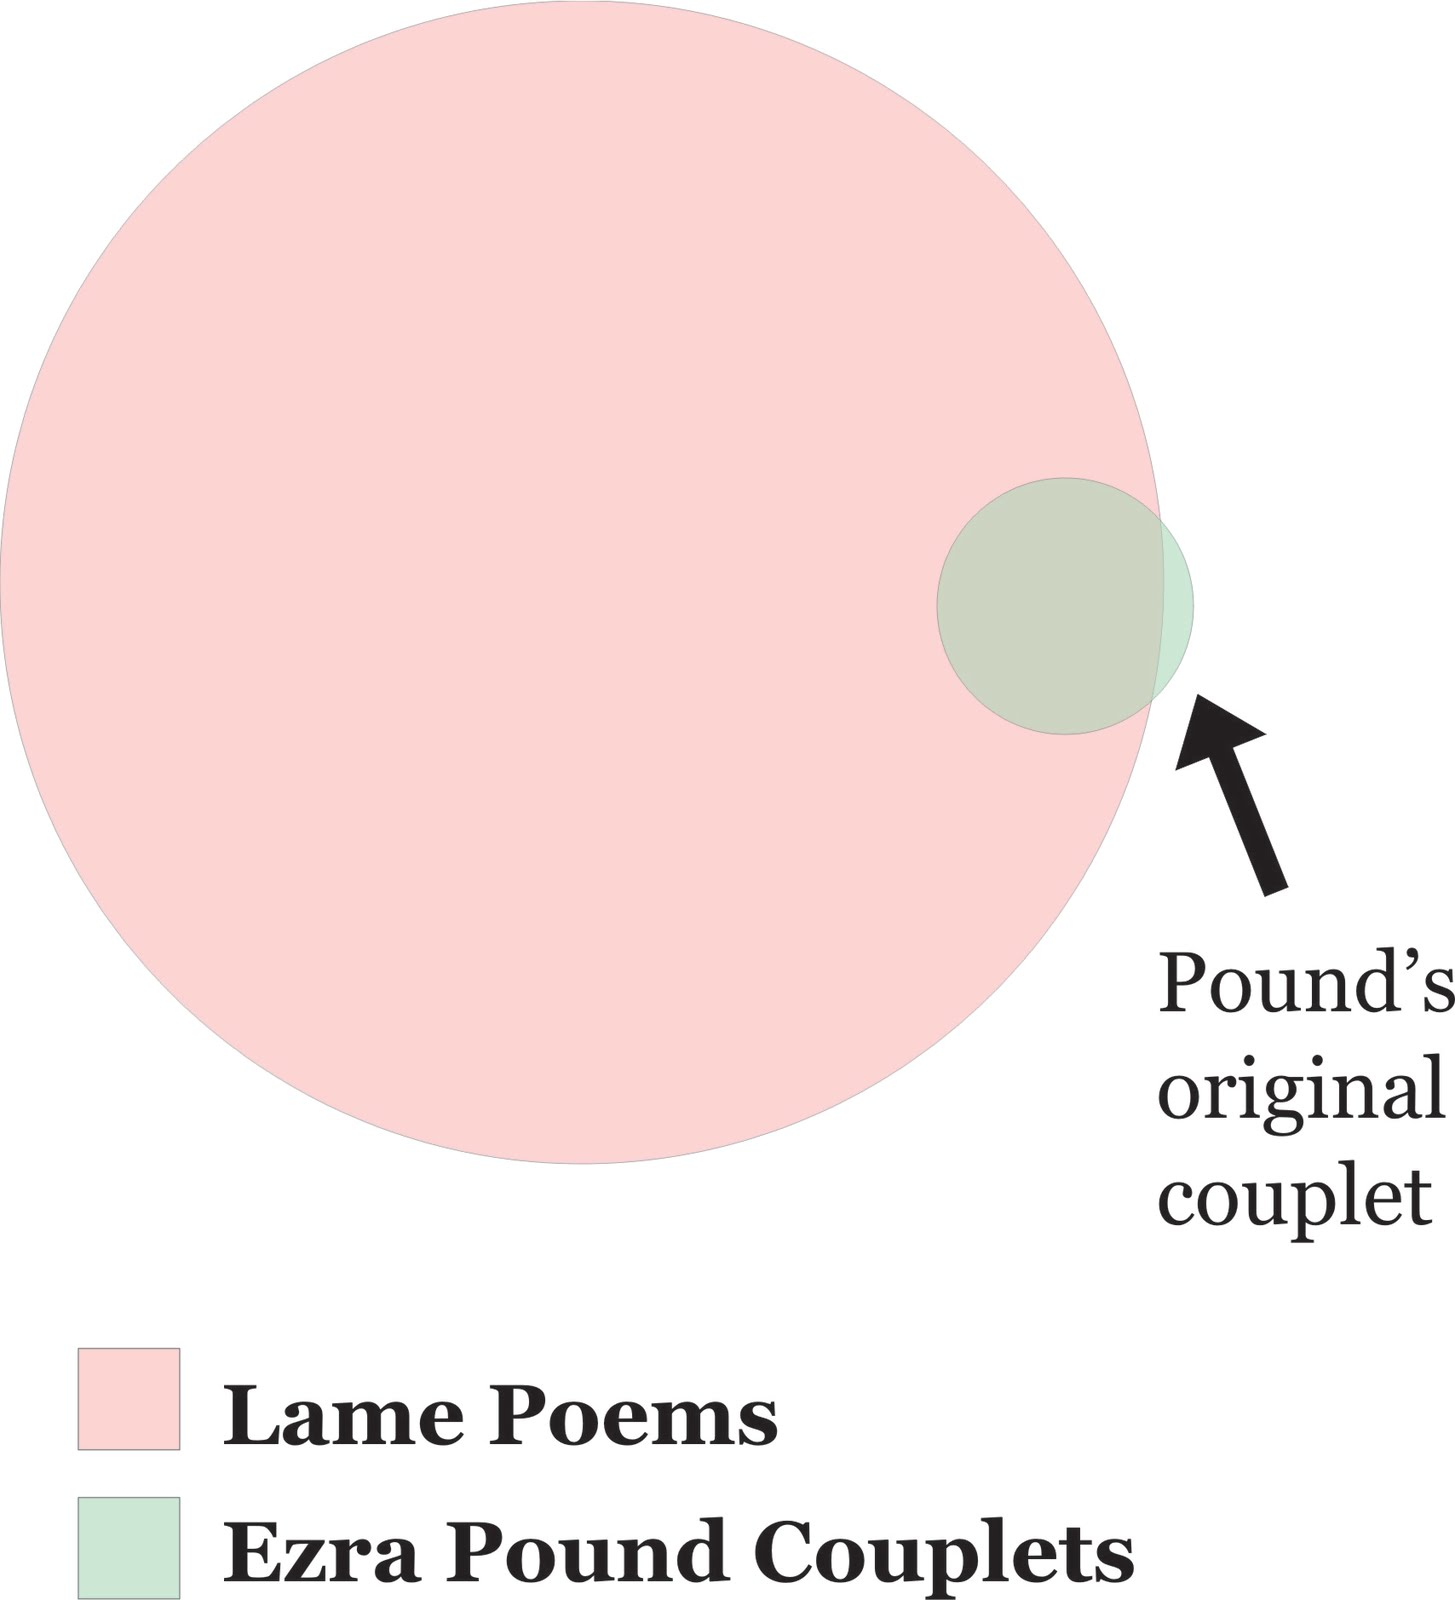 Another something poetic frustration in venn diagram form poetic frustration in venn diagram form ccuart Image collections